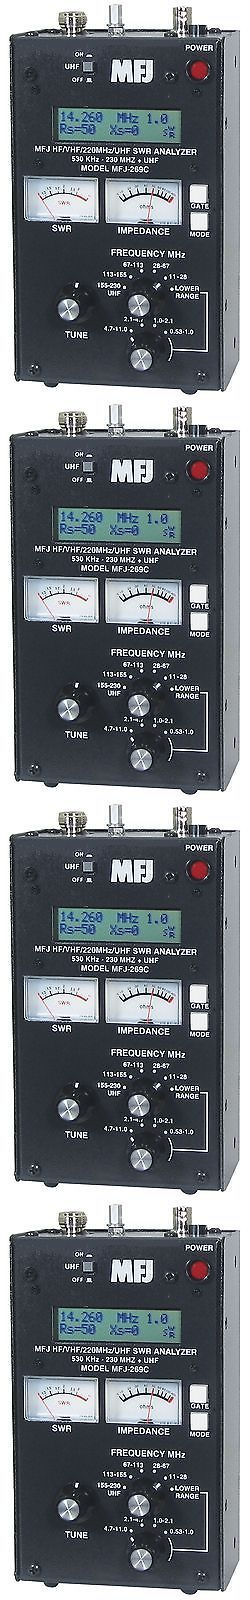 Other Ham Radio Equipment: Mfj-269C Swr Antenna Analyzer 530 Khz - 230 415-470 Mhz Continuous Coverage -> BUY IT NOW ONLY: $322.95 on eBay!